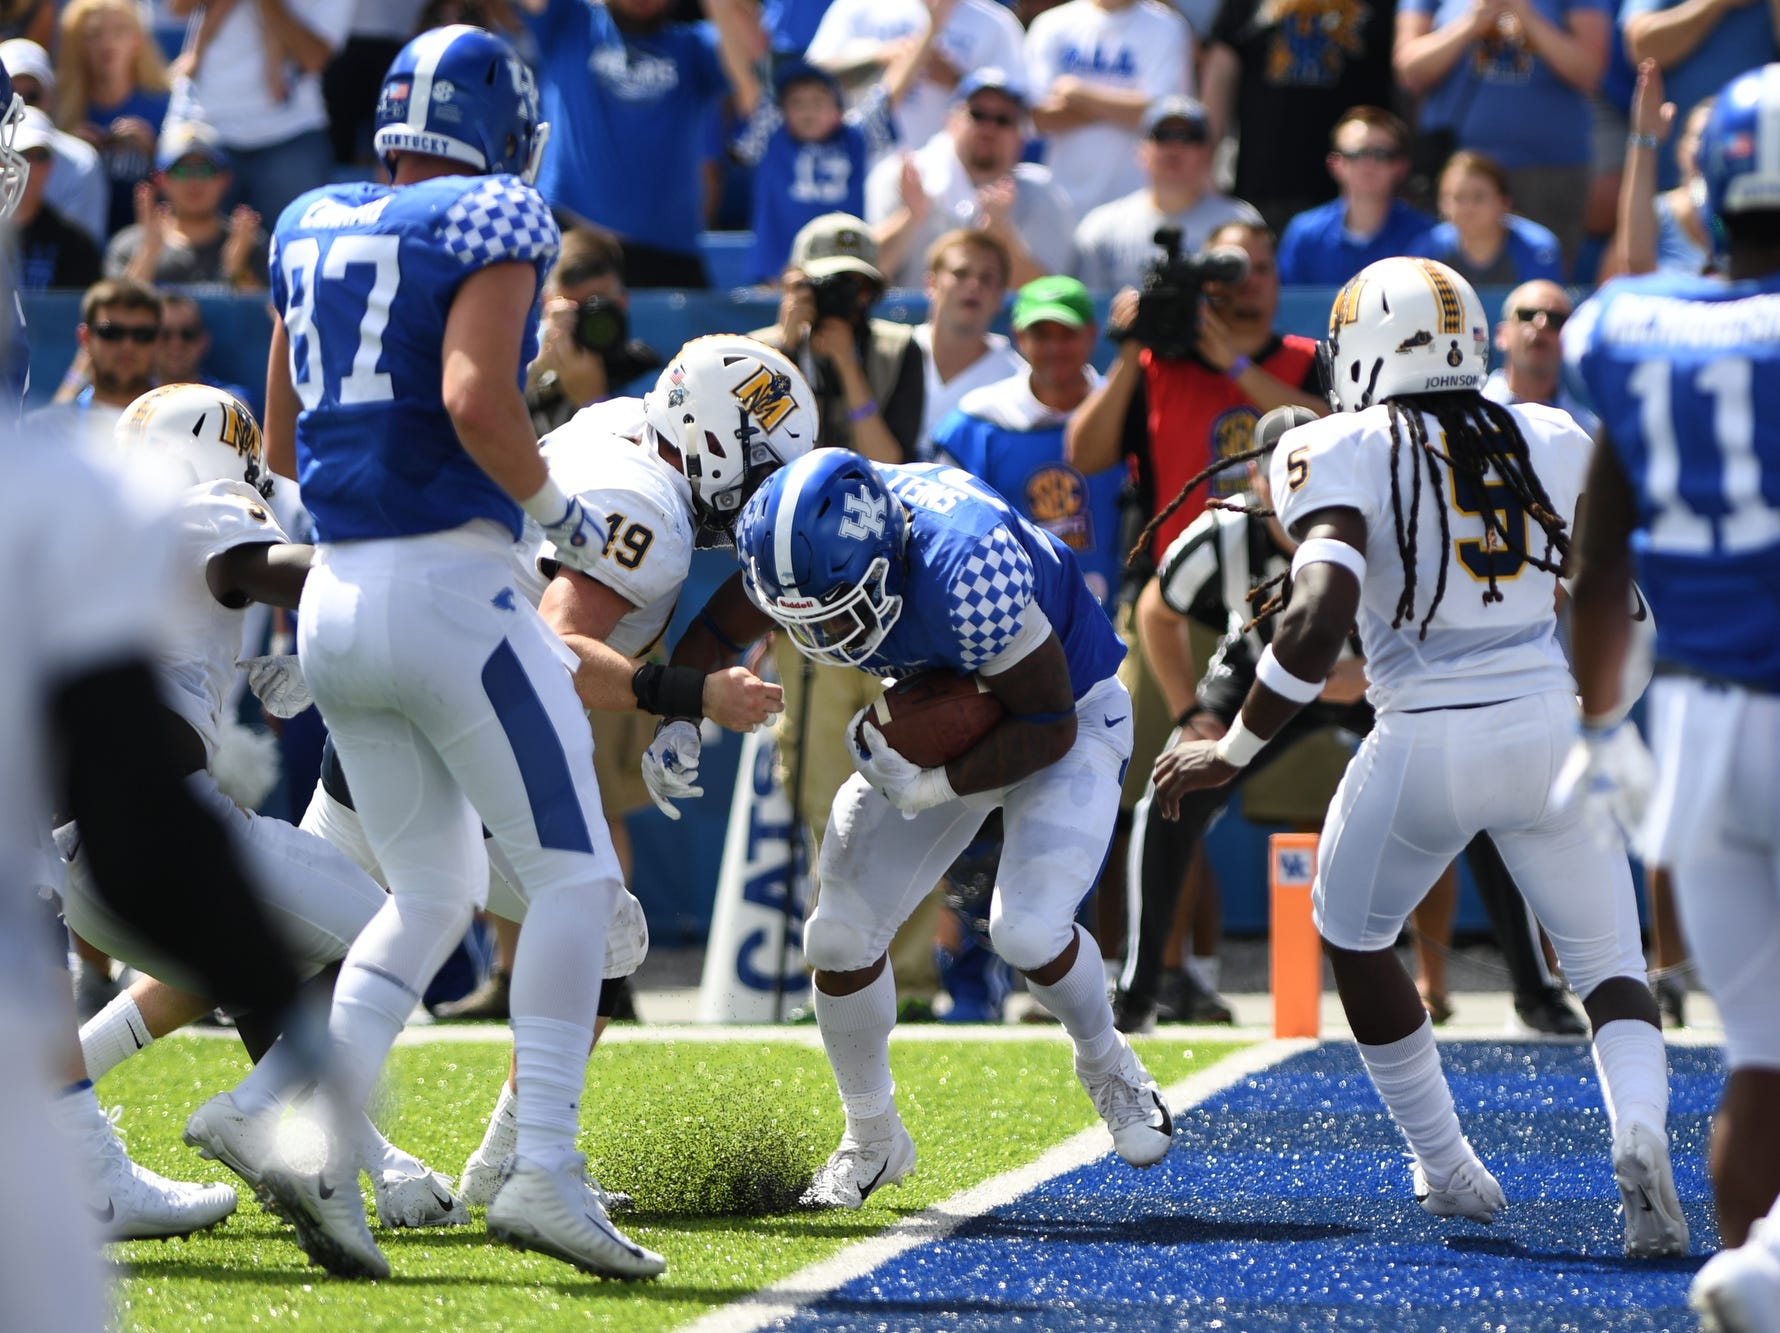 UK RB Benny Snell, Jr. scores a touchdown during the University of Kentucky football game against Murray State at Kroger Field in Lexington, Kentucky on Saturday, September 15, 2018.